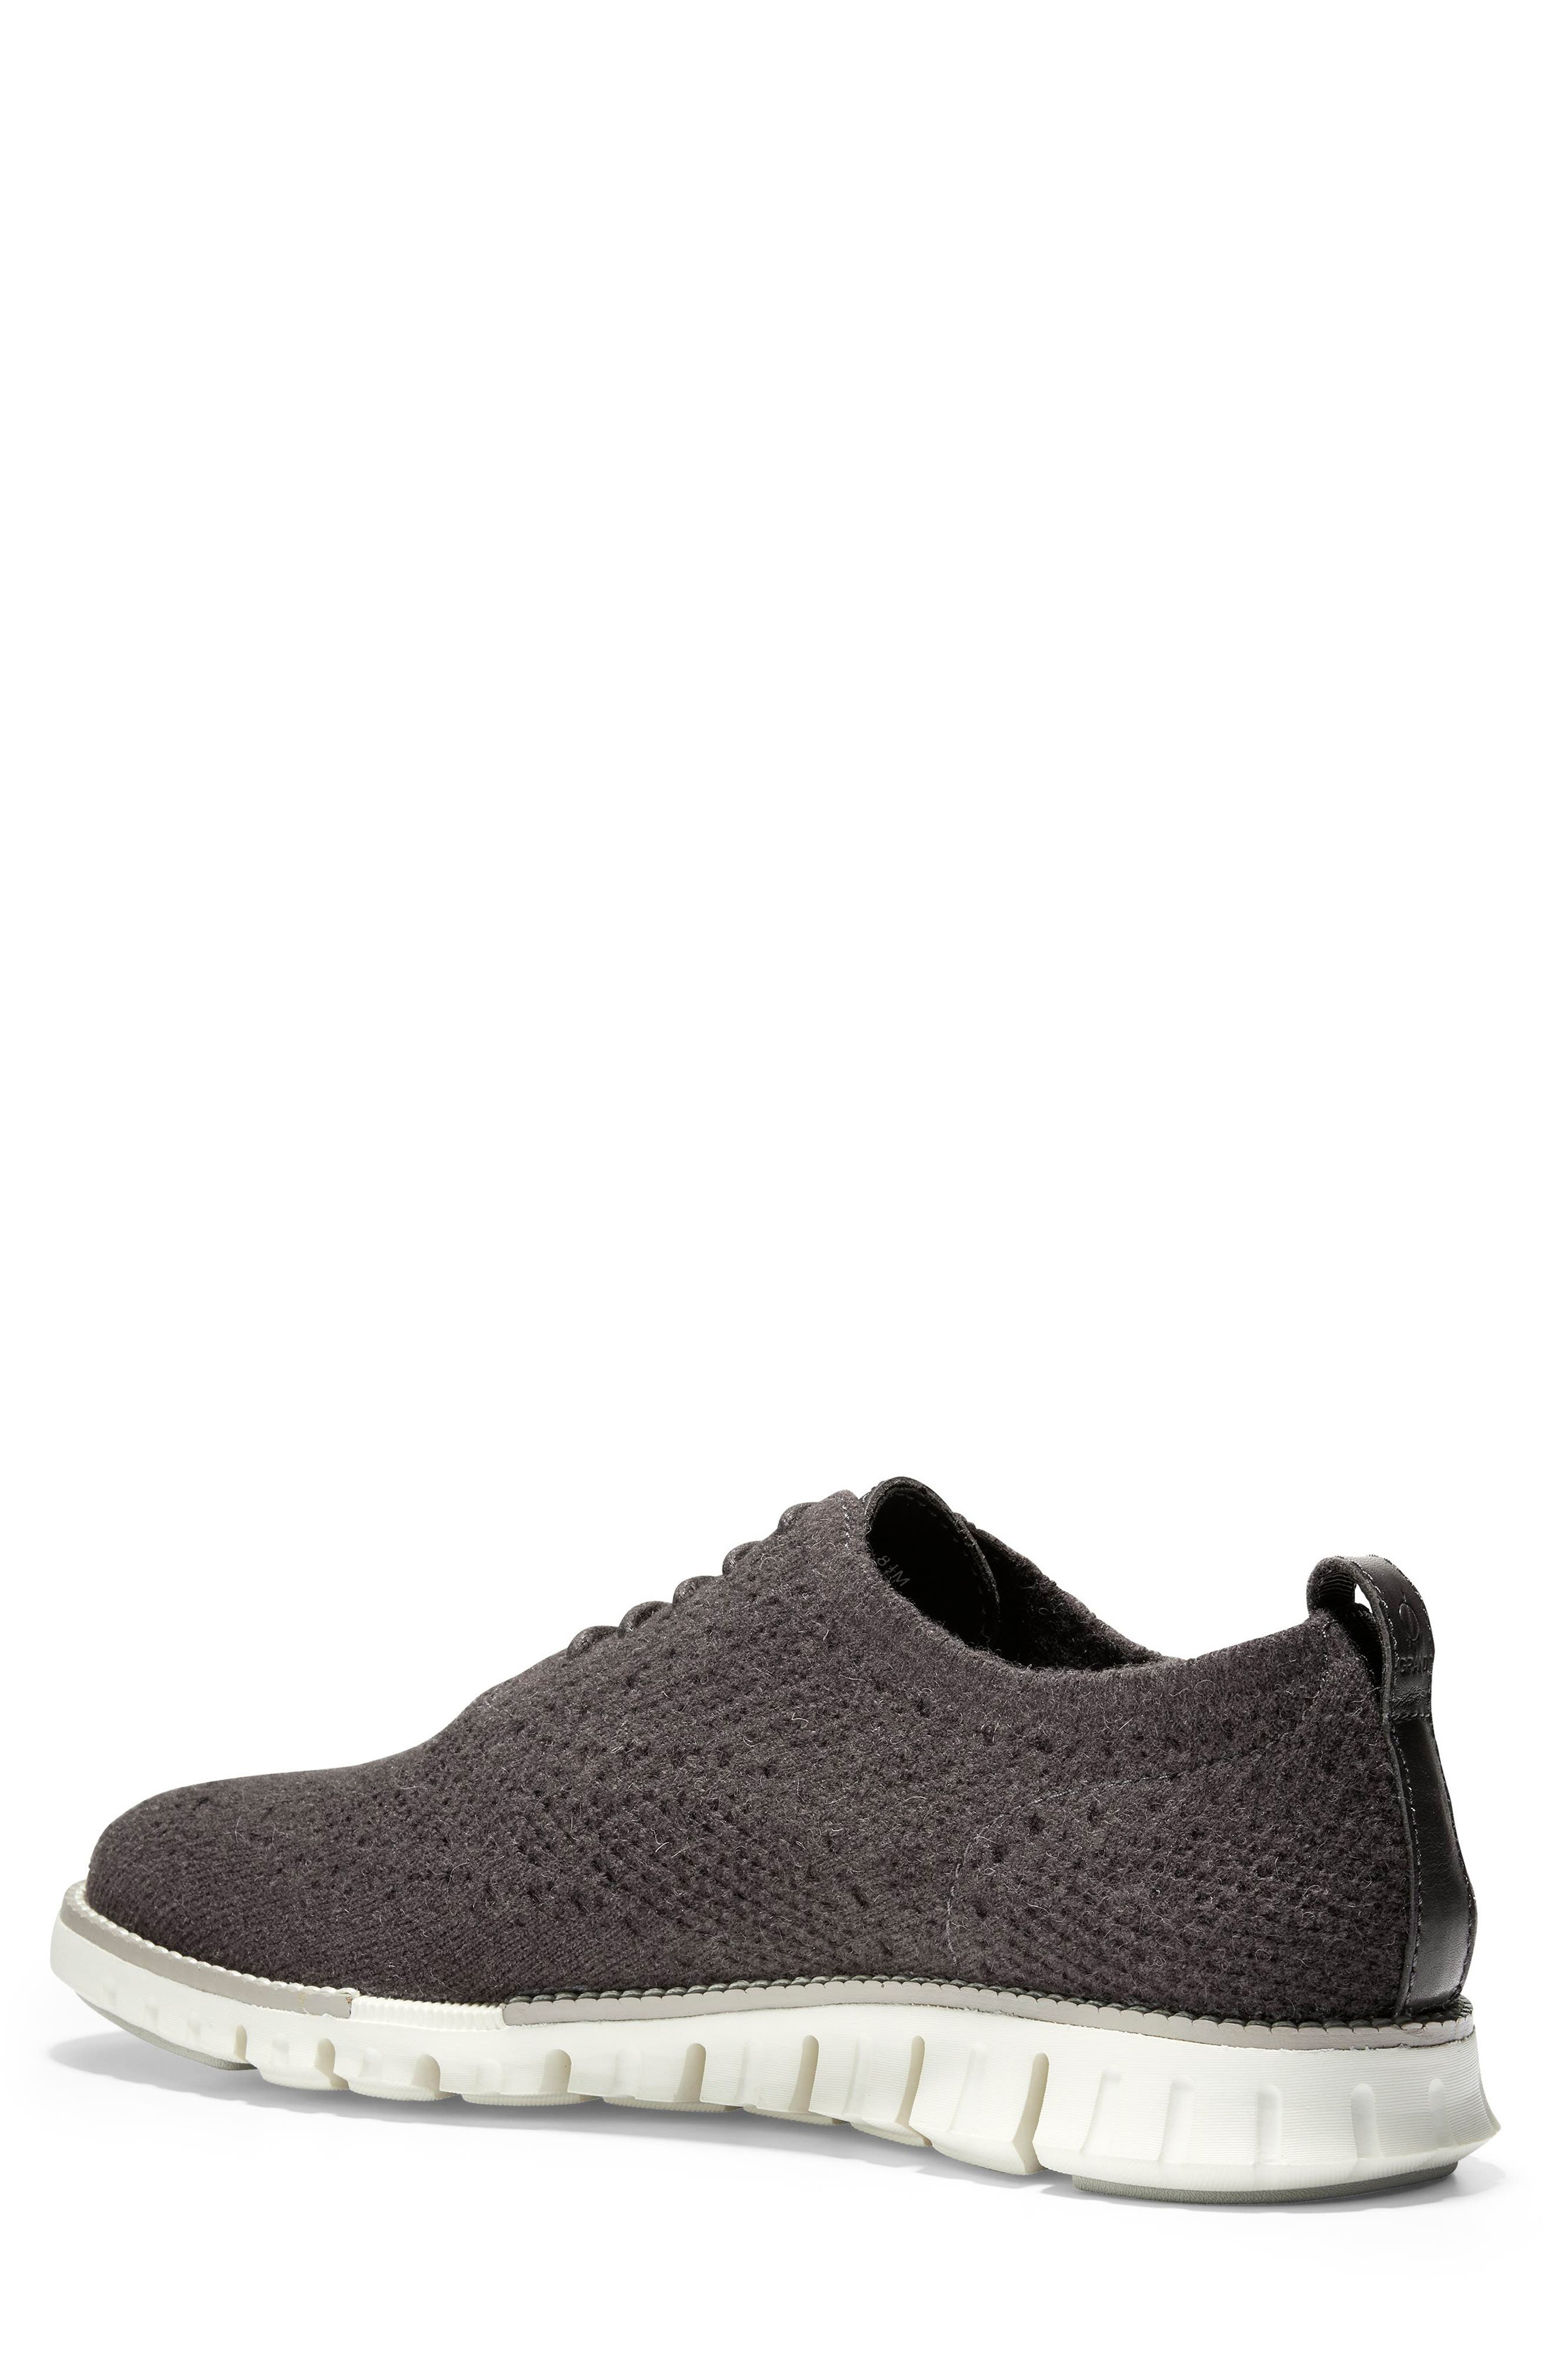 ZeroGrand Stitchlite<sup>™</sup> Water Resistant Wool Oxford,                             Alternate thumbnail 2, color,                             DARK ROAST WOOL KNIT/ IVORY